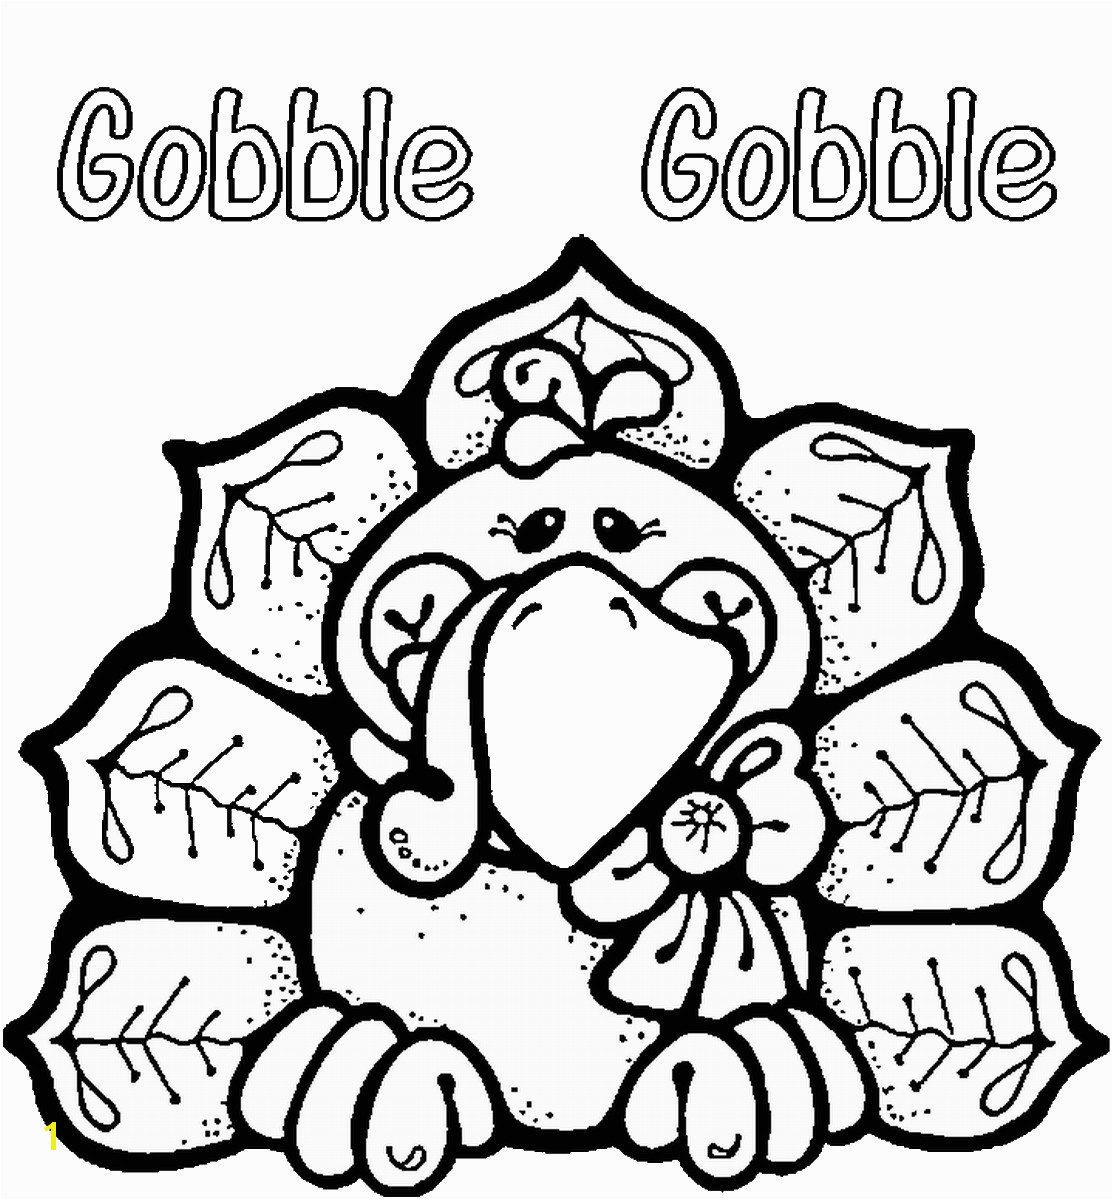 happy thanksgiving day coloring pages Printable Thanksgiving Coloring Pages Fresh Best Coloring Page Adult Od